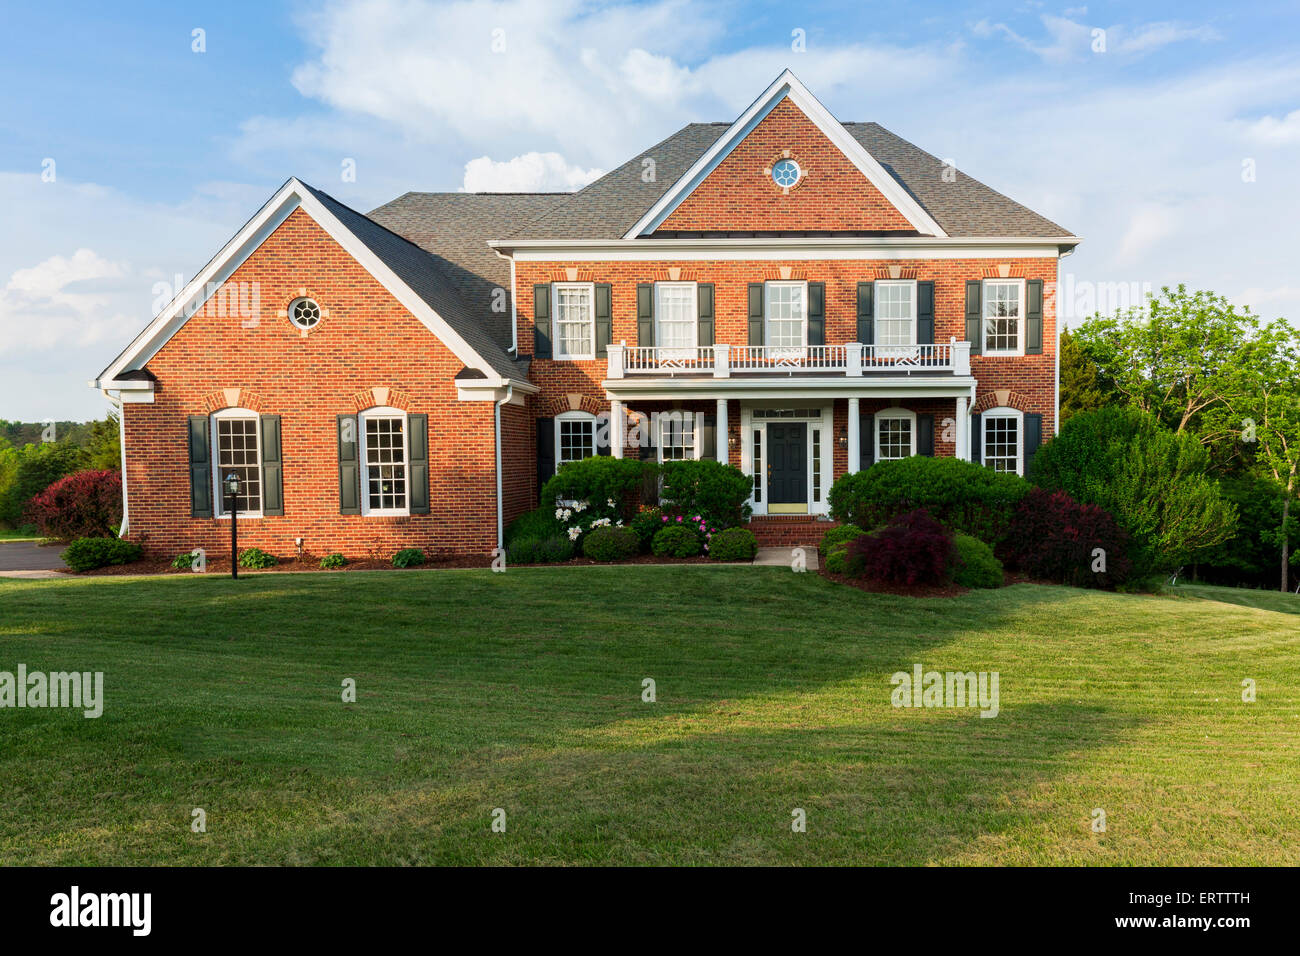 Large detached house, USA - Stock Image